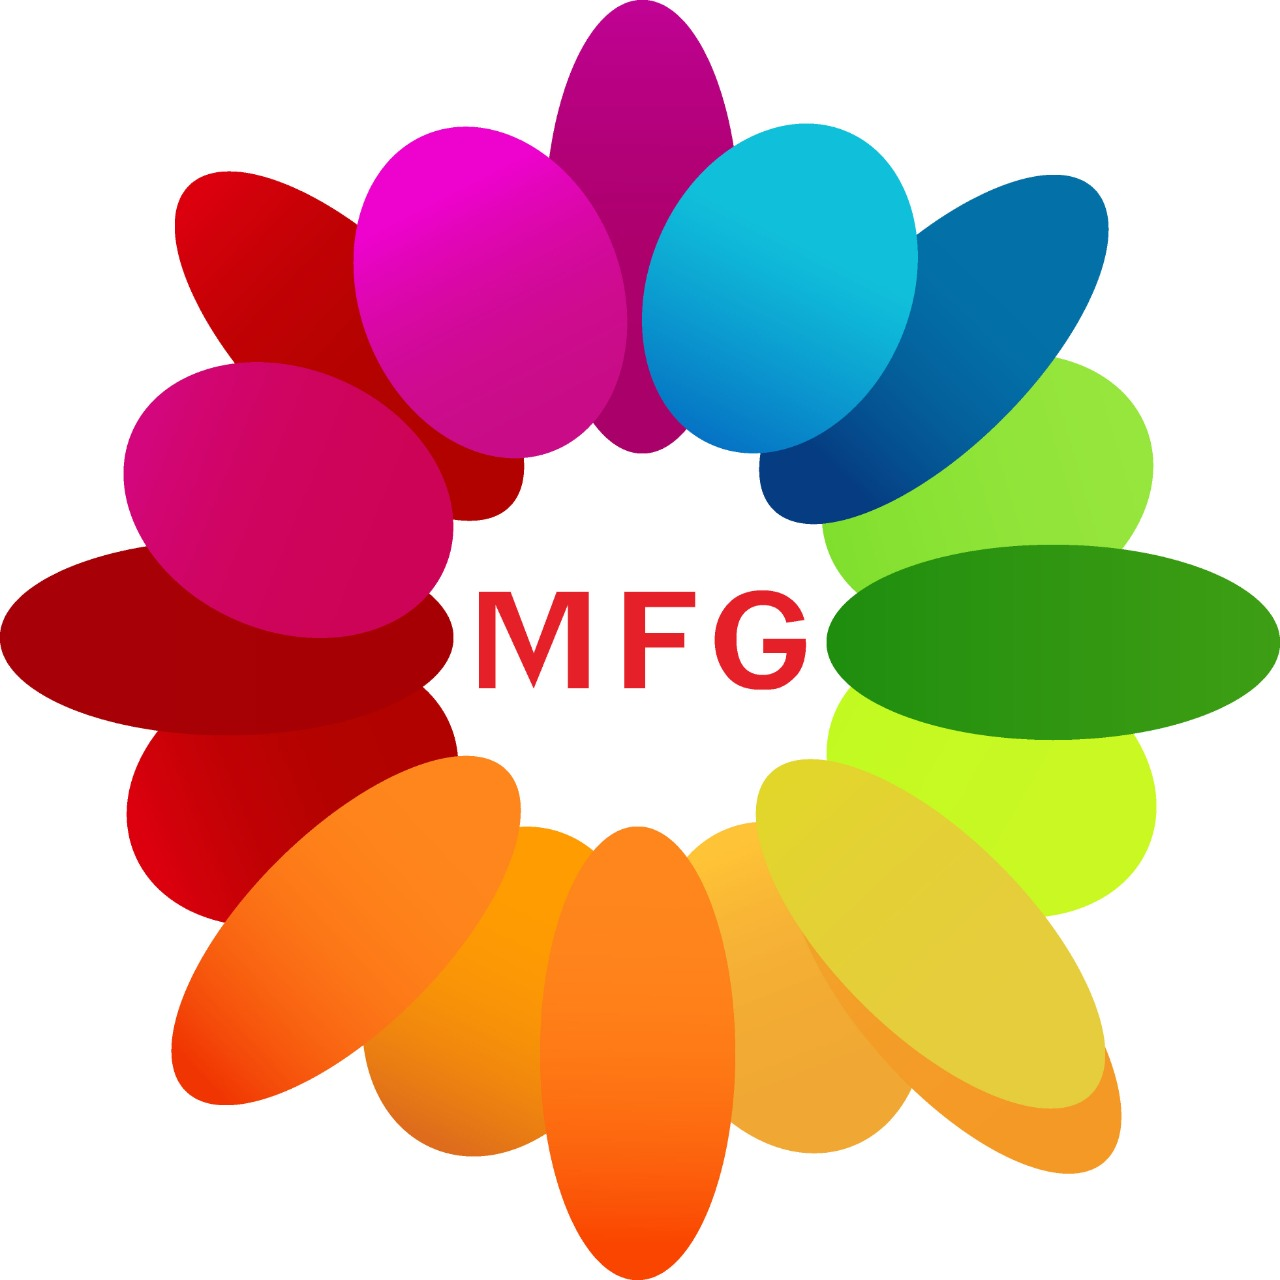 Bunch of red roses with pink lilies